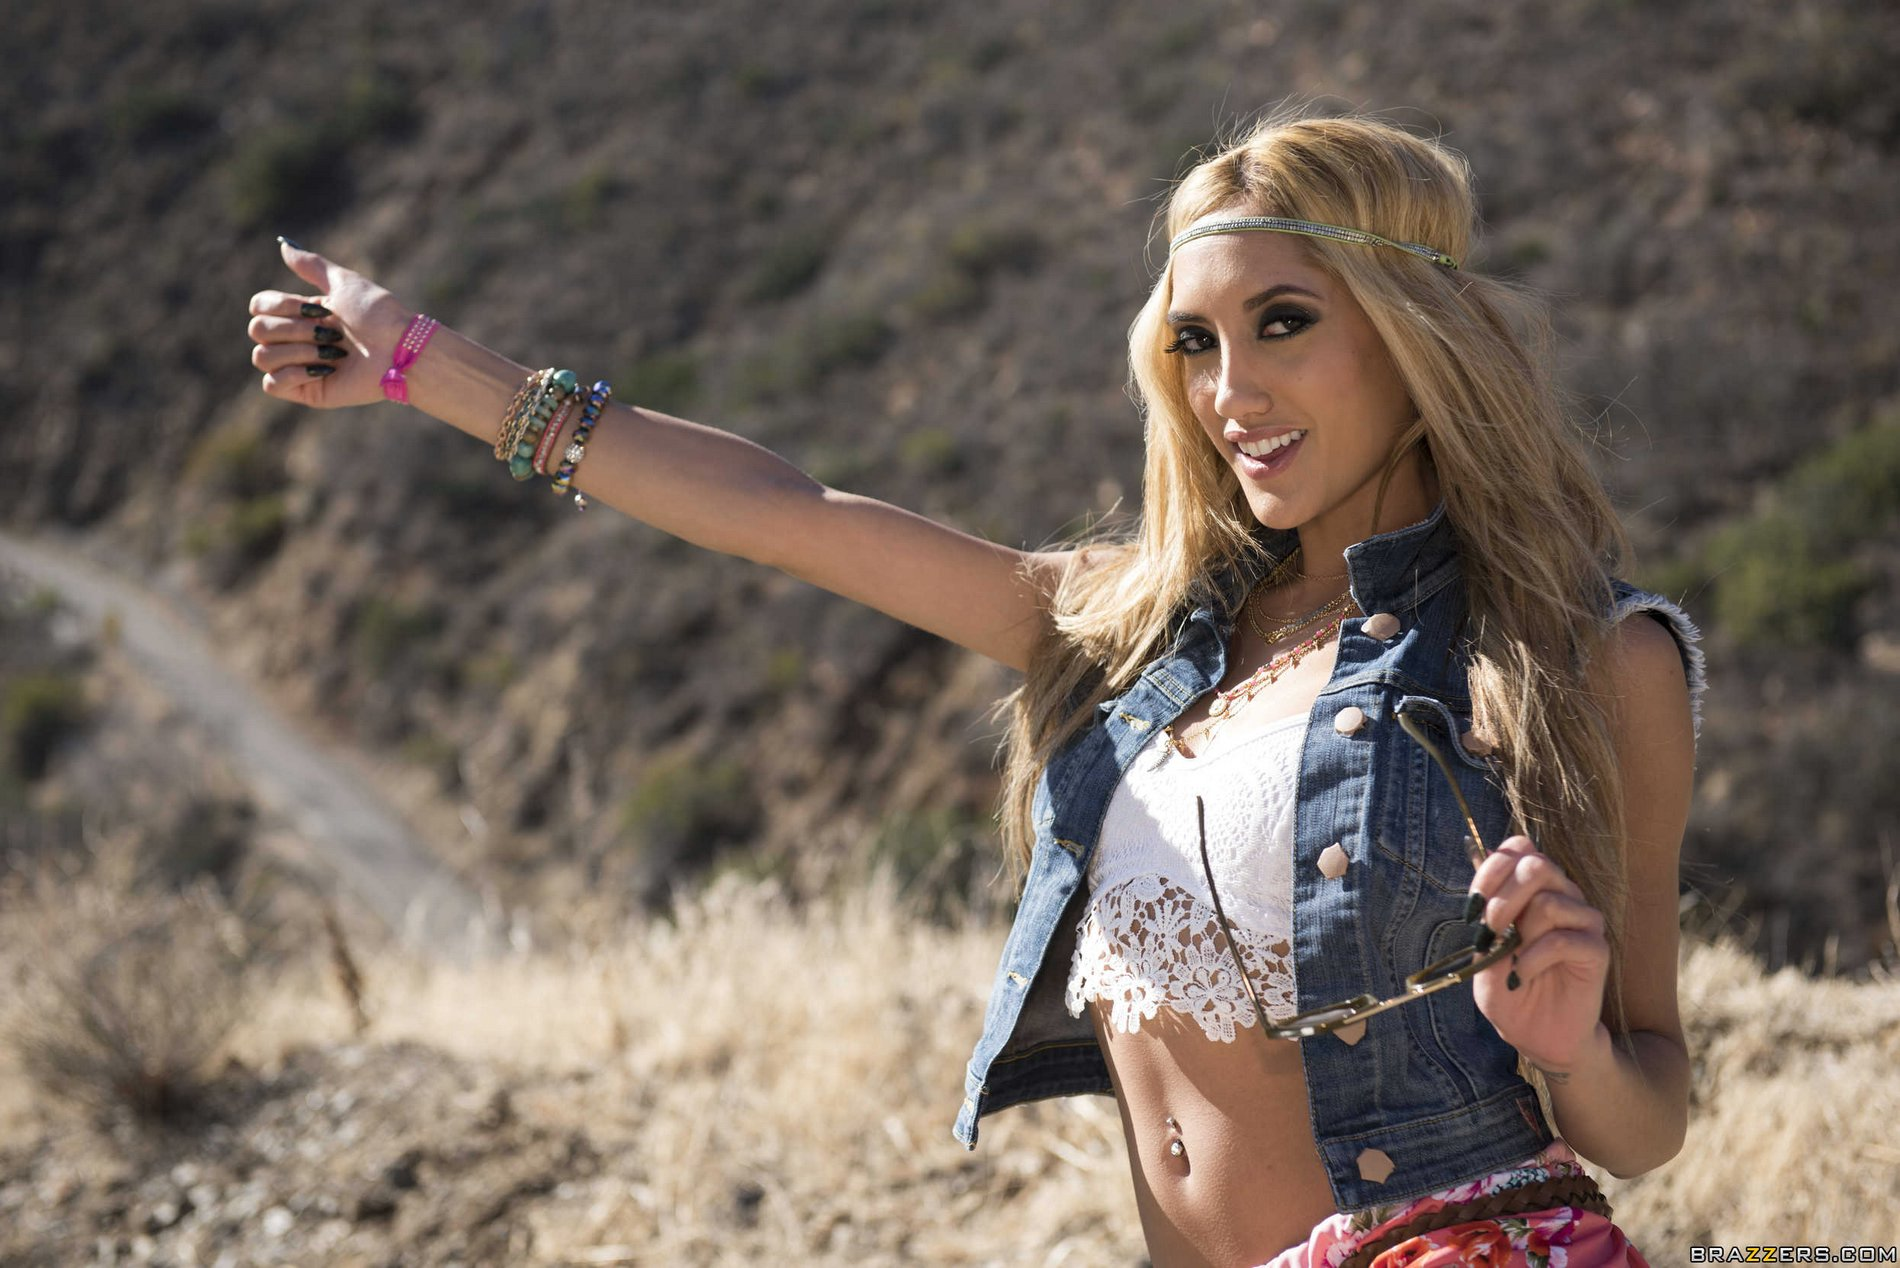 chloe amour hitchhiker